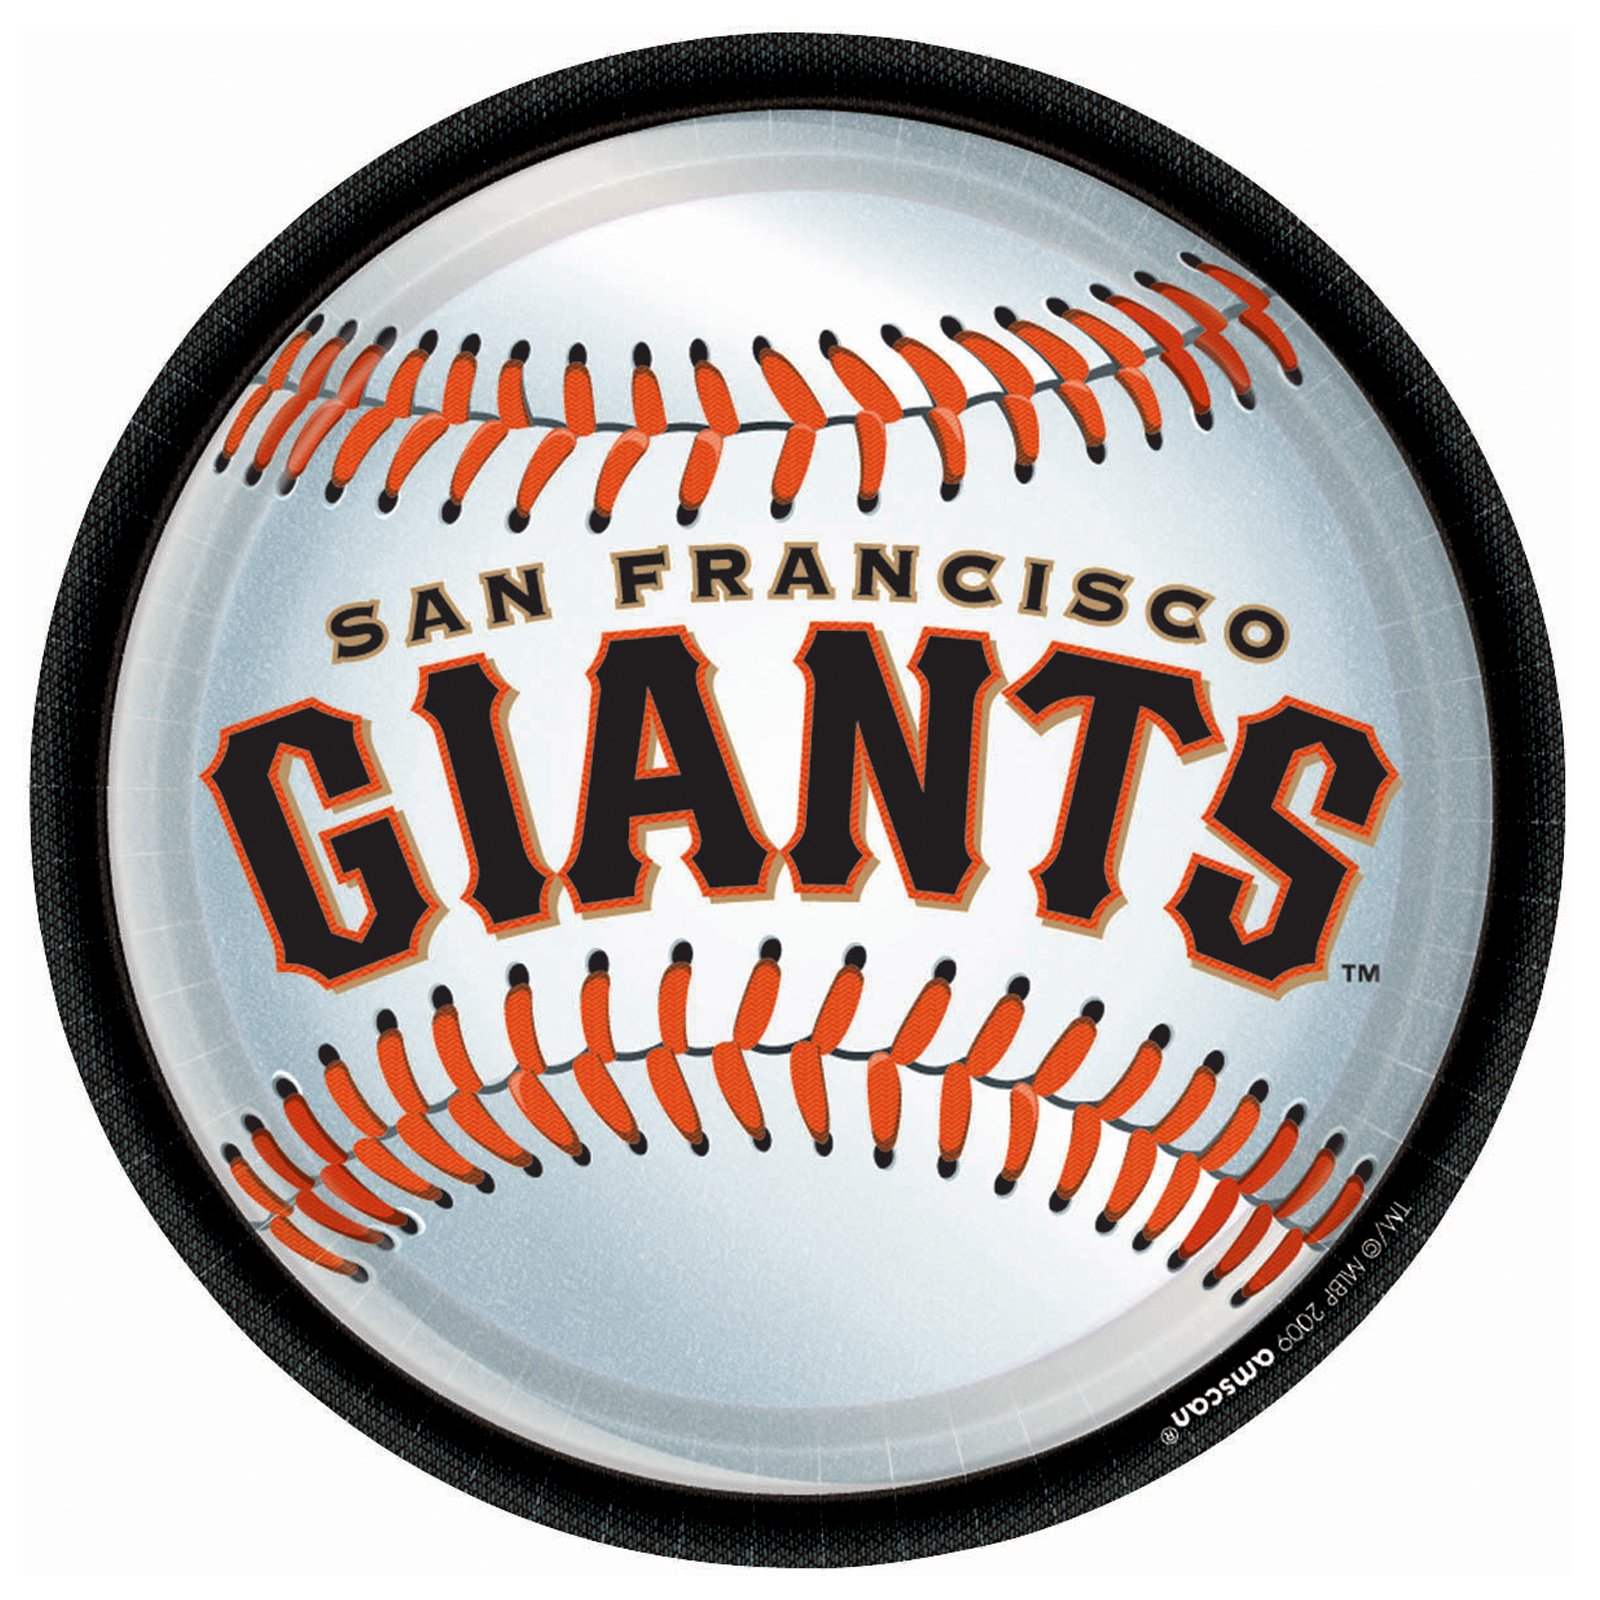 San Francisco Giants Clipart.